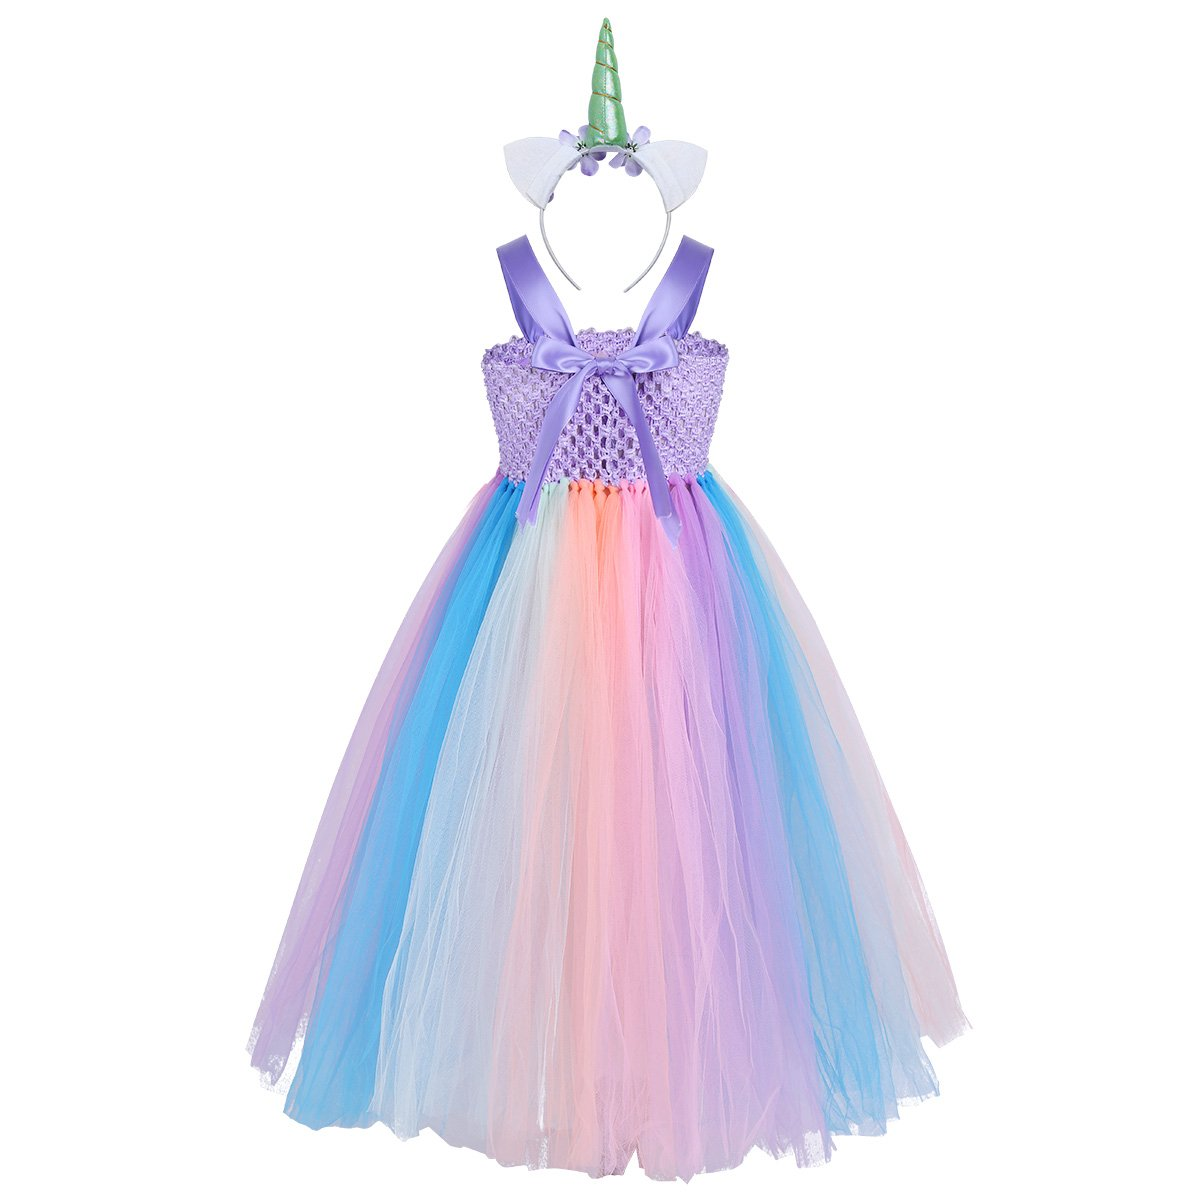 8e4c77e77f Buy Feeshow Kids Girls Unicorn Rainbow Train Dress with Tutu Headband Party  Outfit Easter Fancy Dress up Costumes Purple Rainbow 2-3 Online at Low  Prices in ...